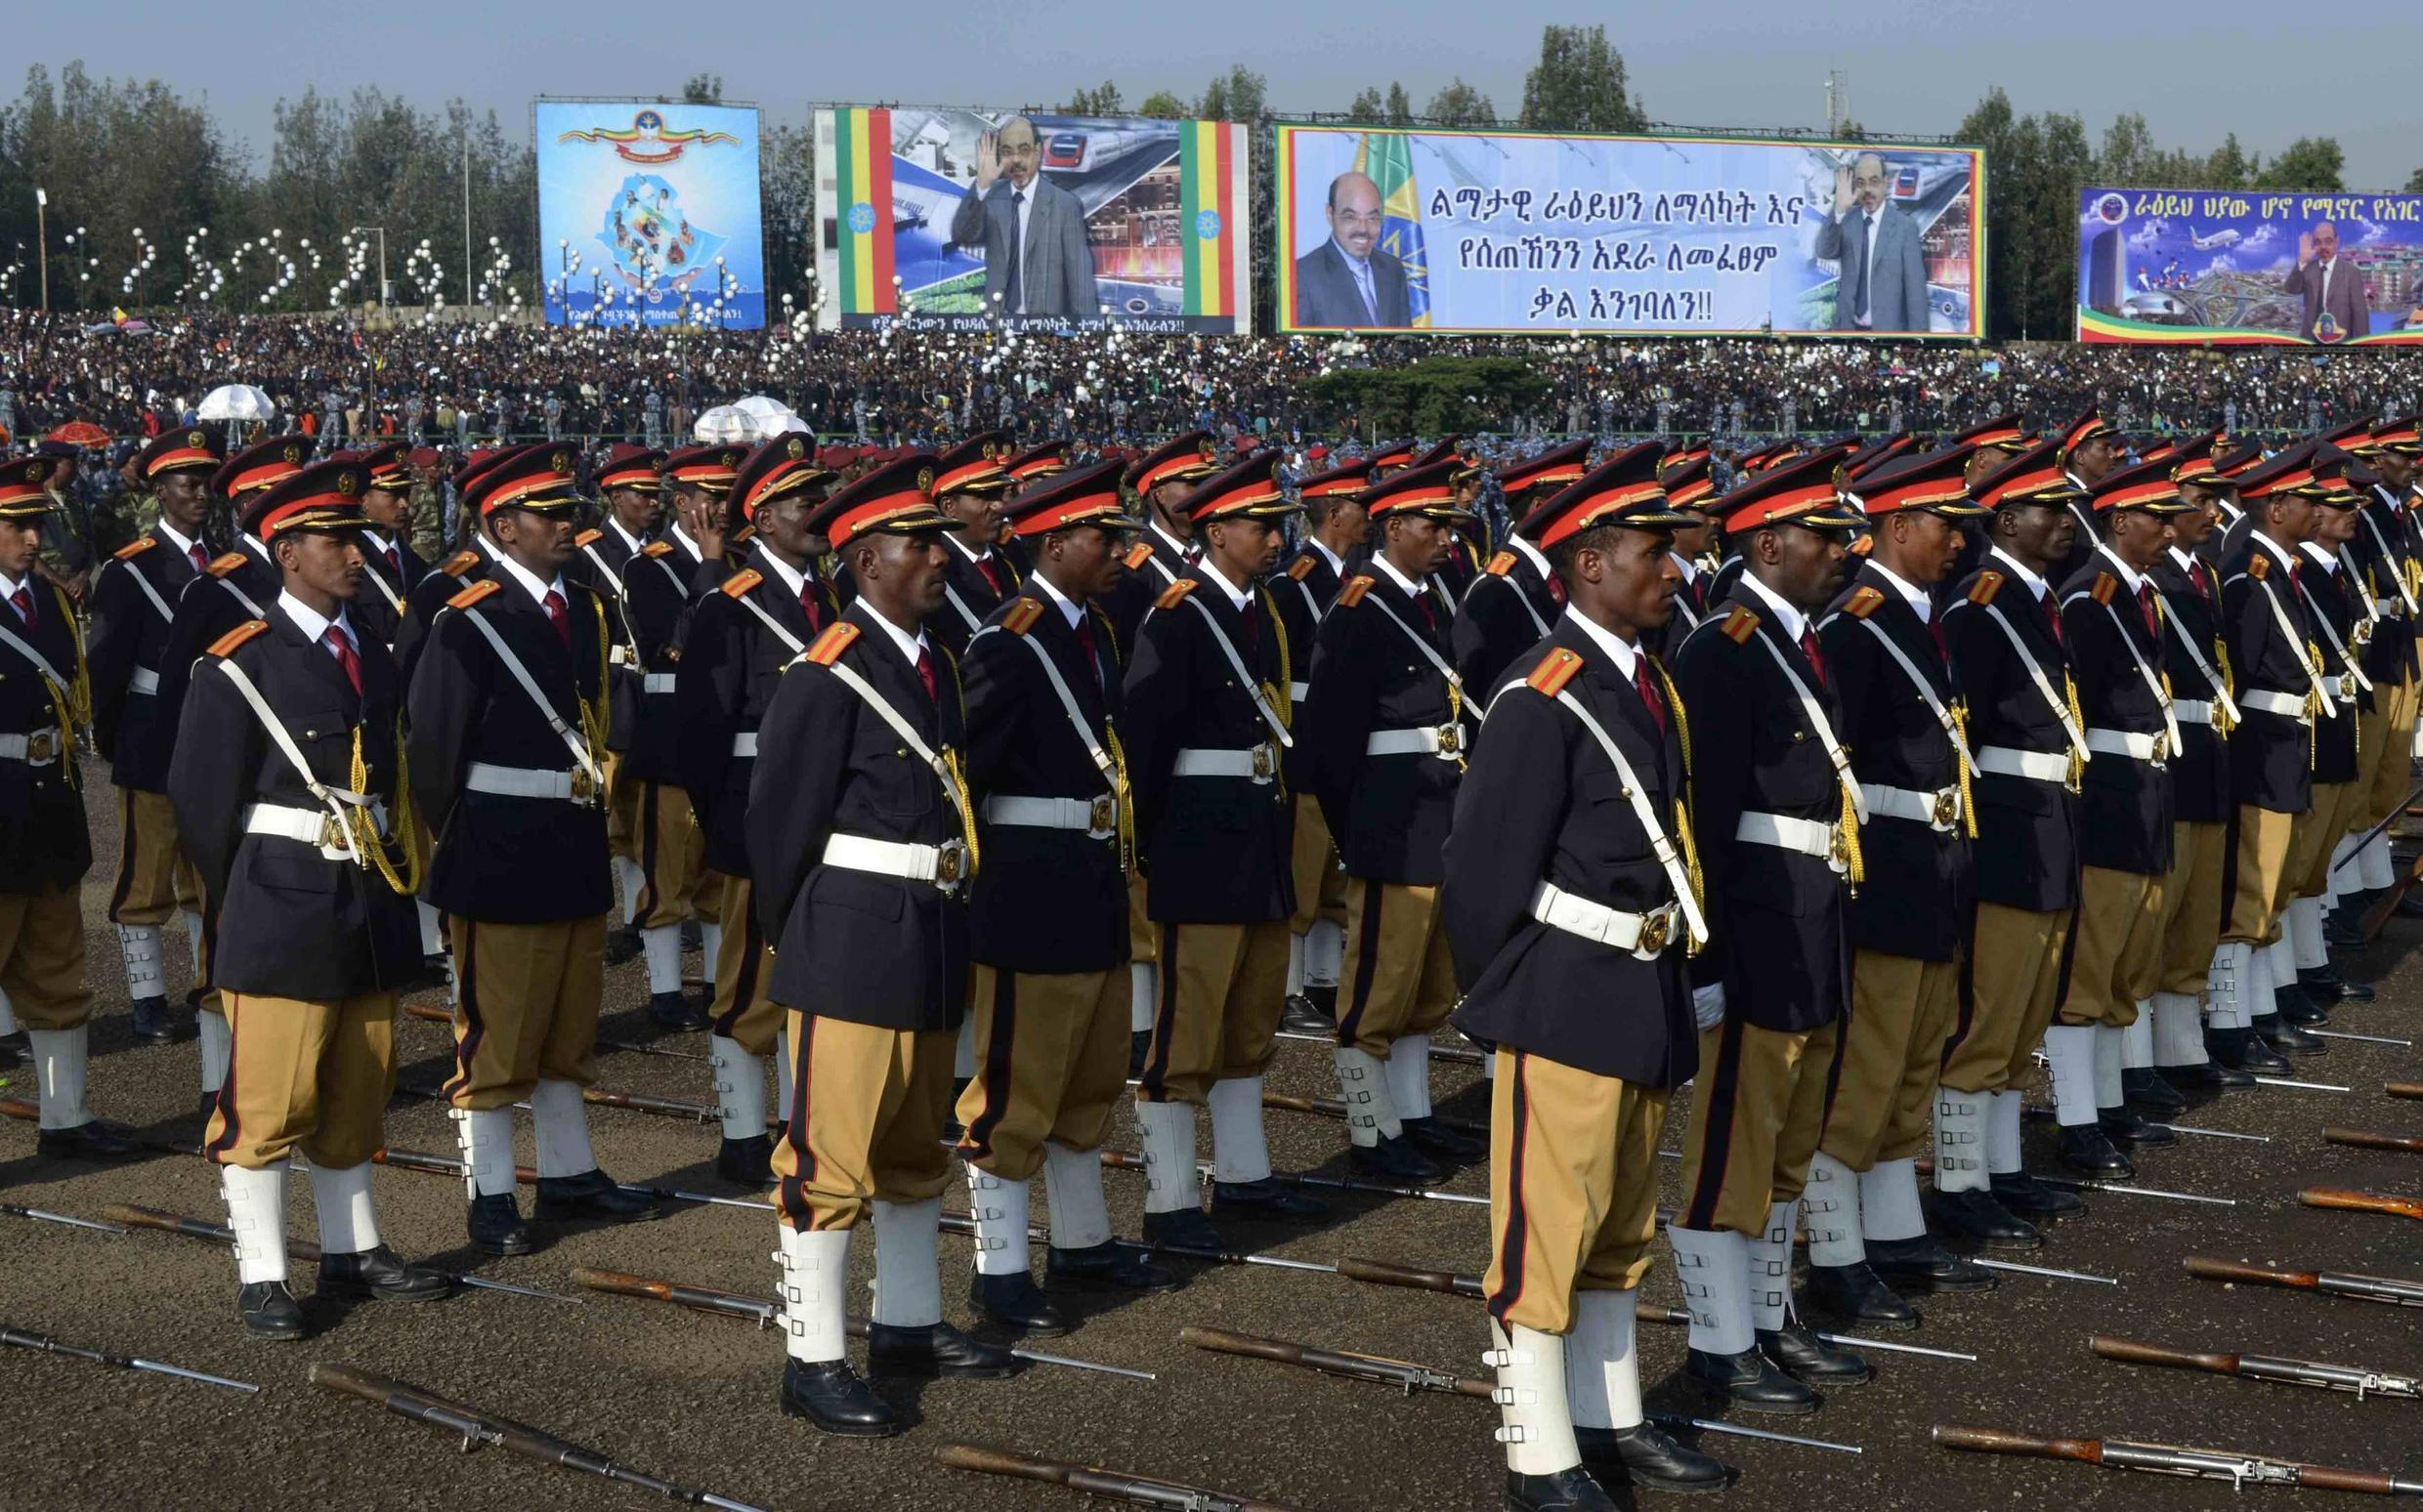 Soldiers attend the funeral ceremony of Ethiopia's Prime Minister Meles Zenawi in Addis Ababa, 2 September 2012